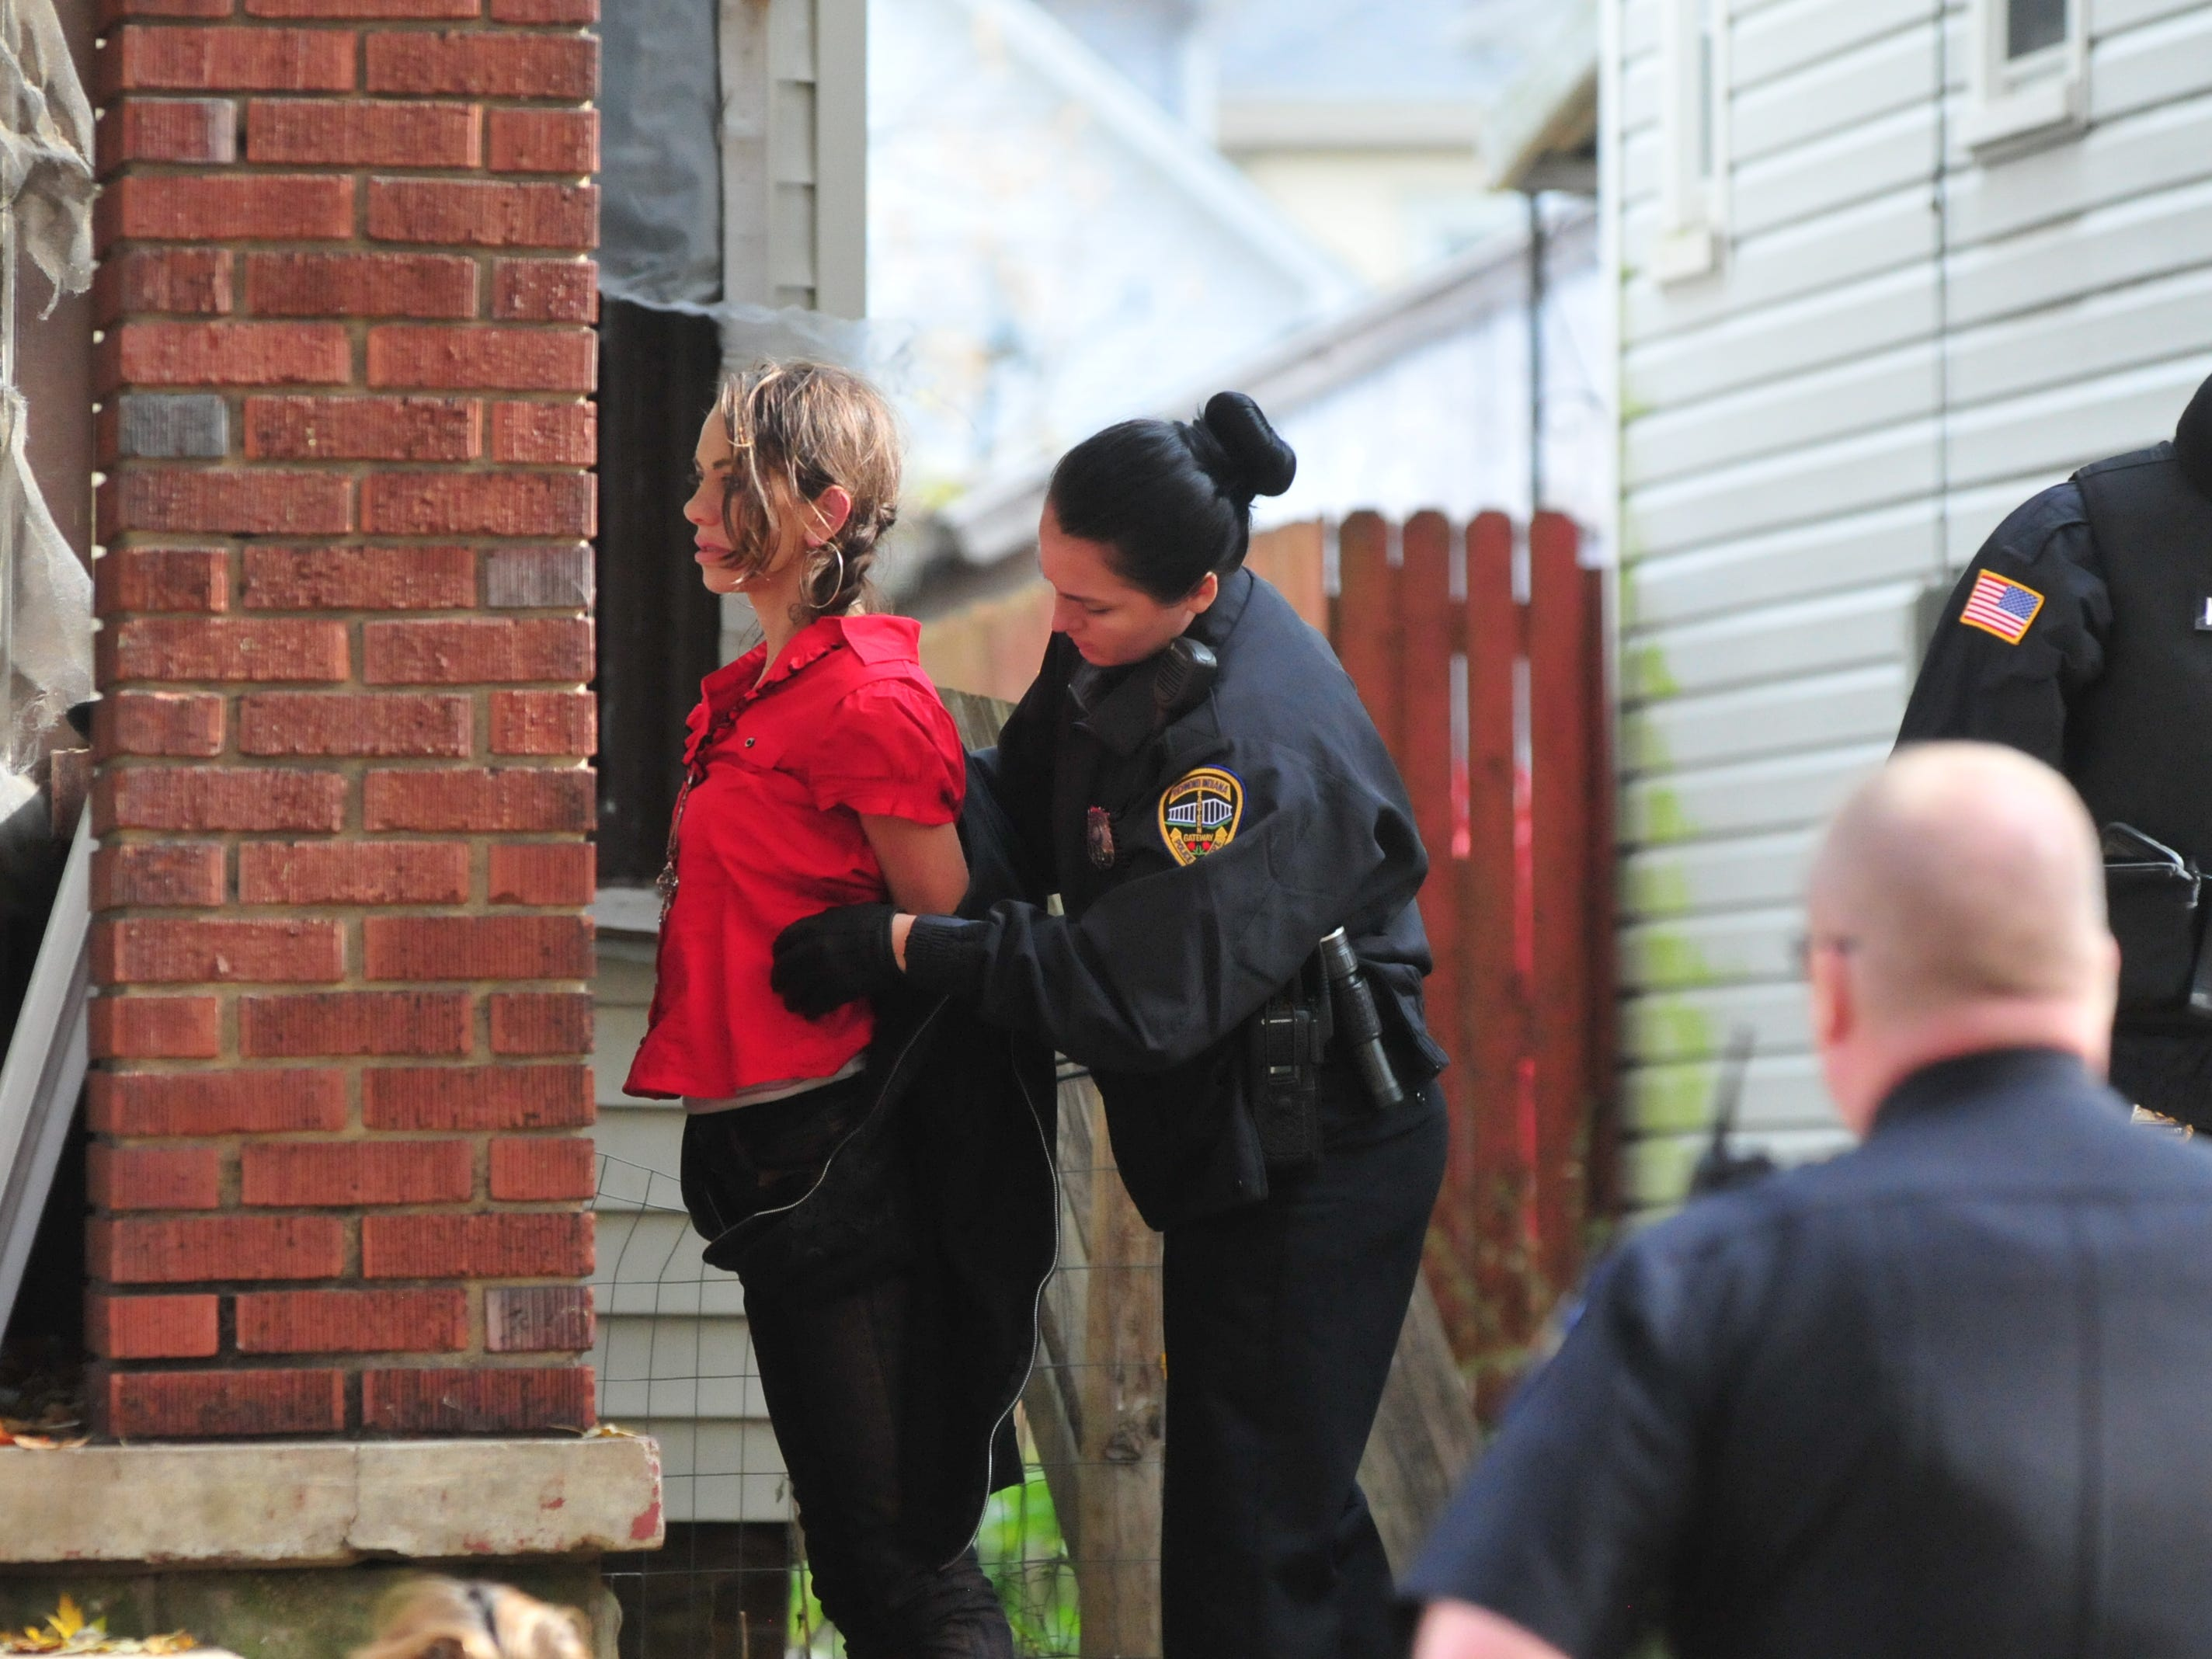 Richmond Police Department Officer Seara Burton searches Breckin Strickland during a SWAT raid Monday.